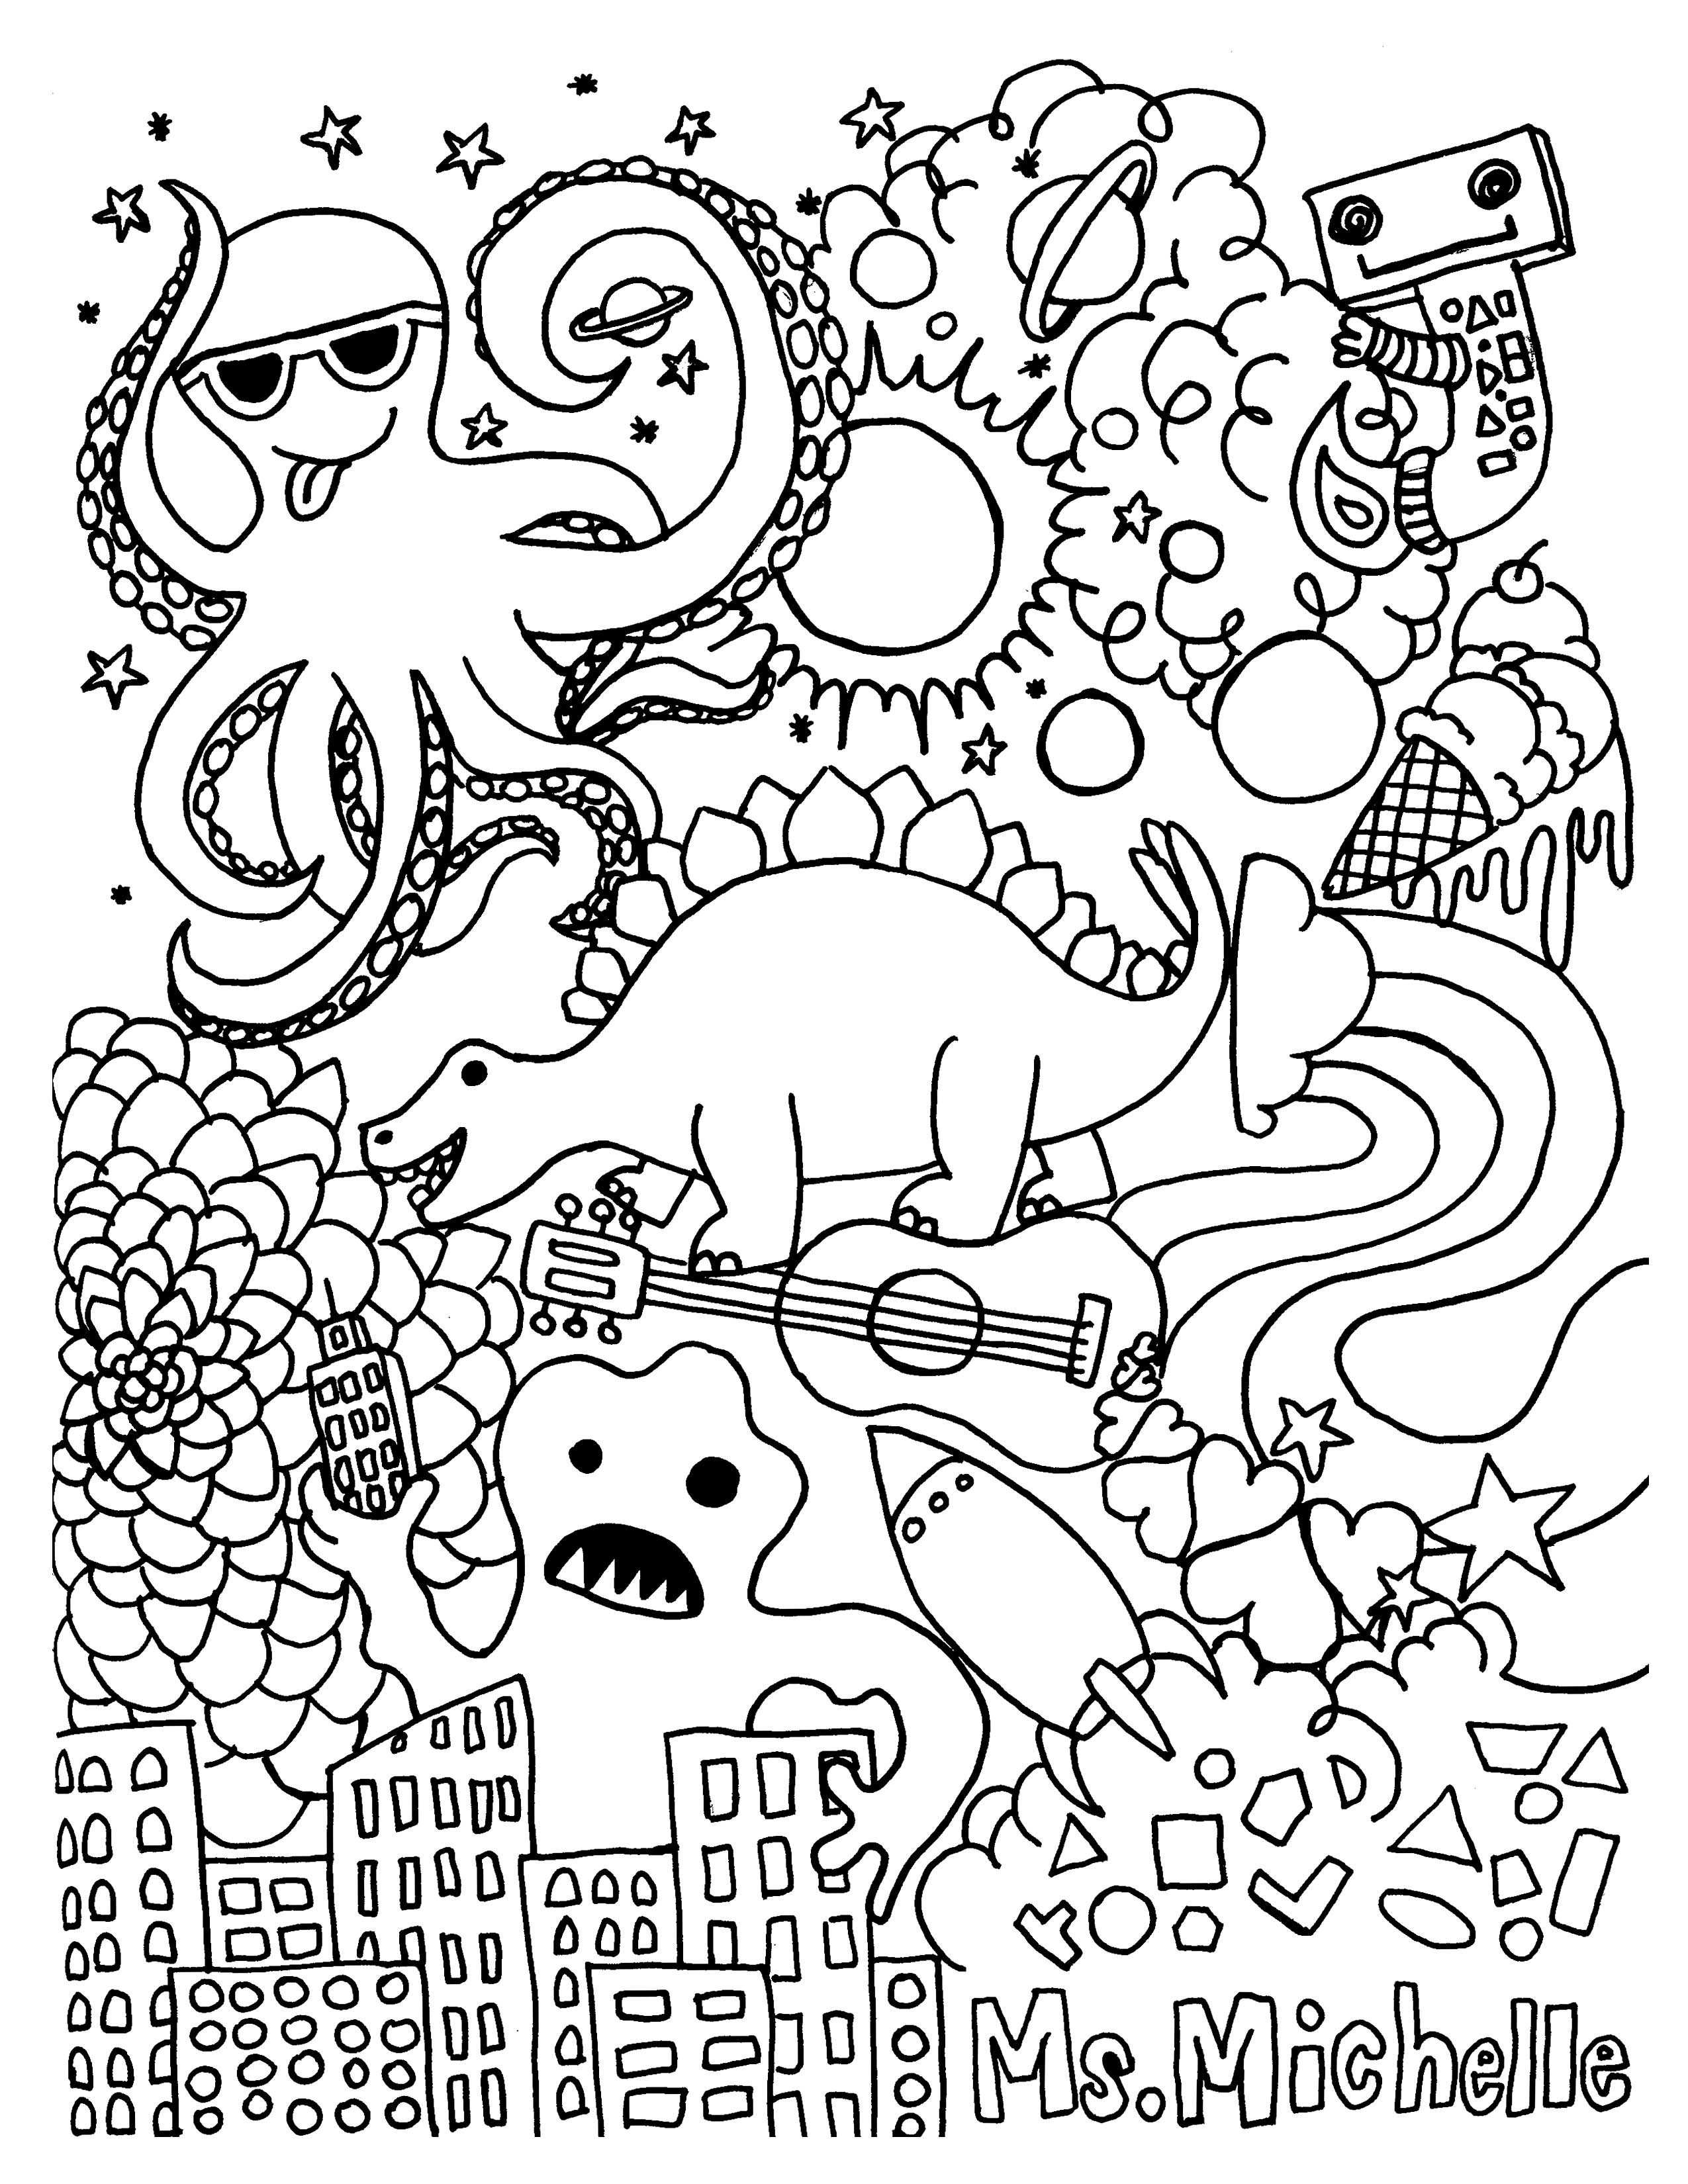 Monkey Coloring Pages for Preschoolers  Printable 14i - Free Download